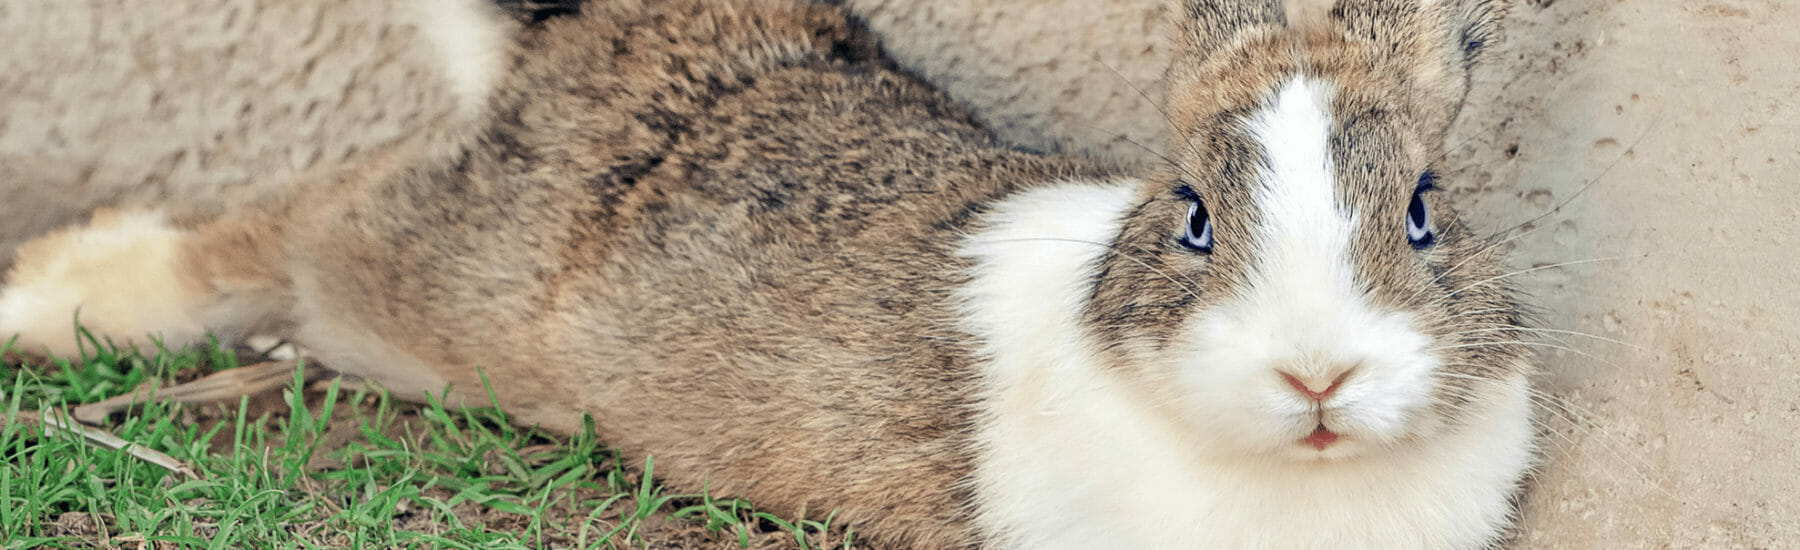 Rabbit laying on its side in the grass